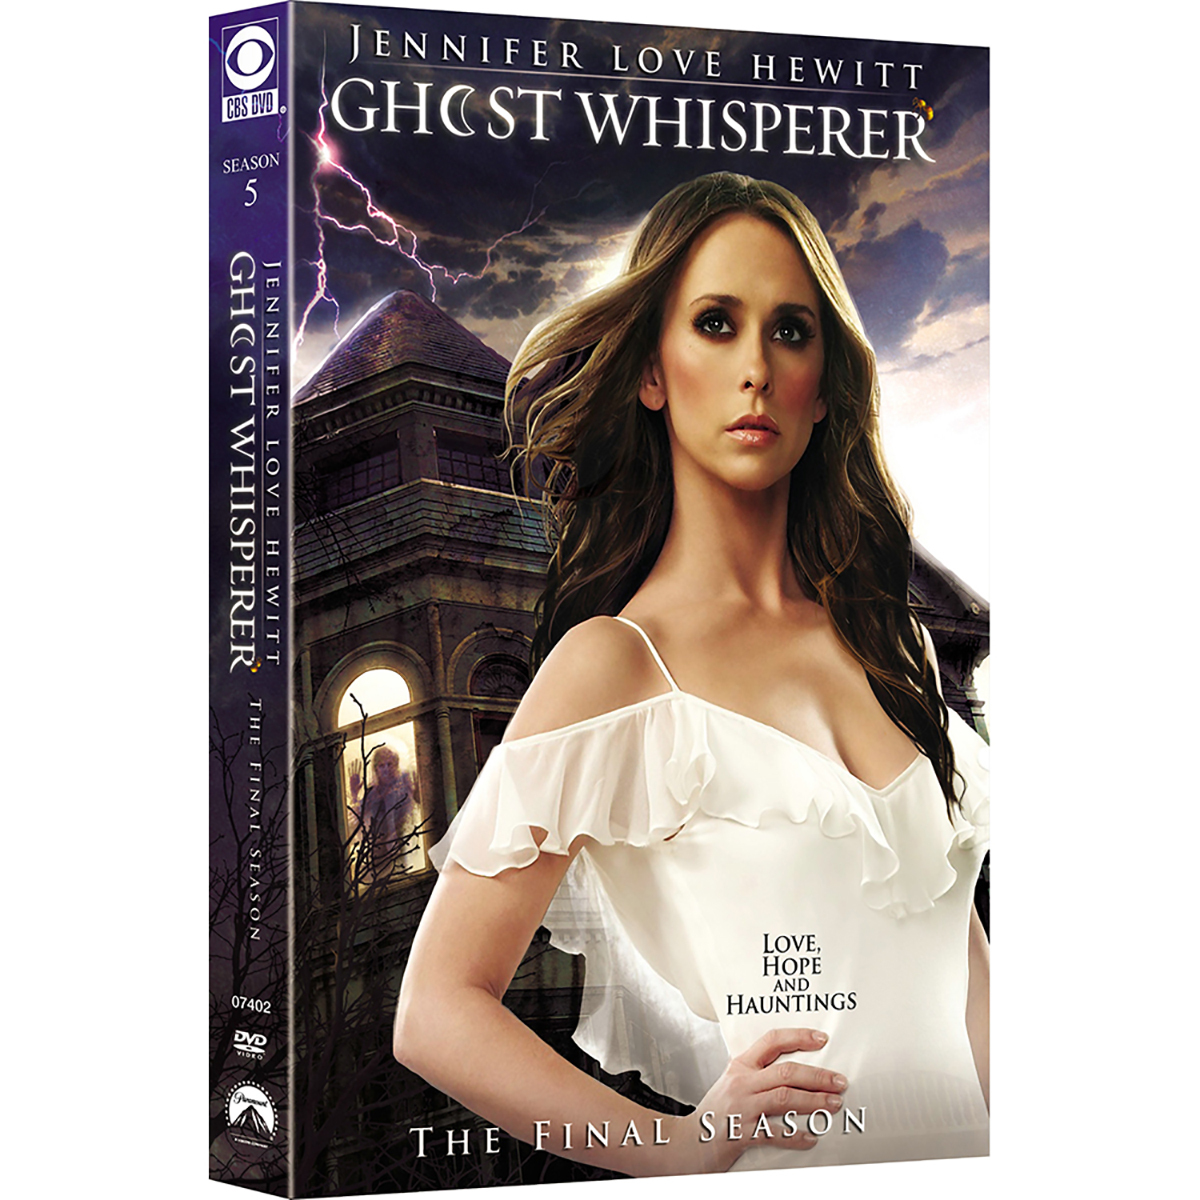 Ghost Whisperer: Season 5 DVD -  DVDs & Videos 4285-275991